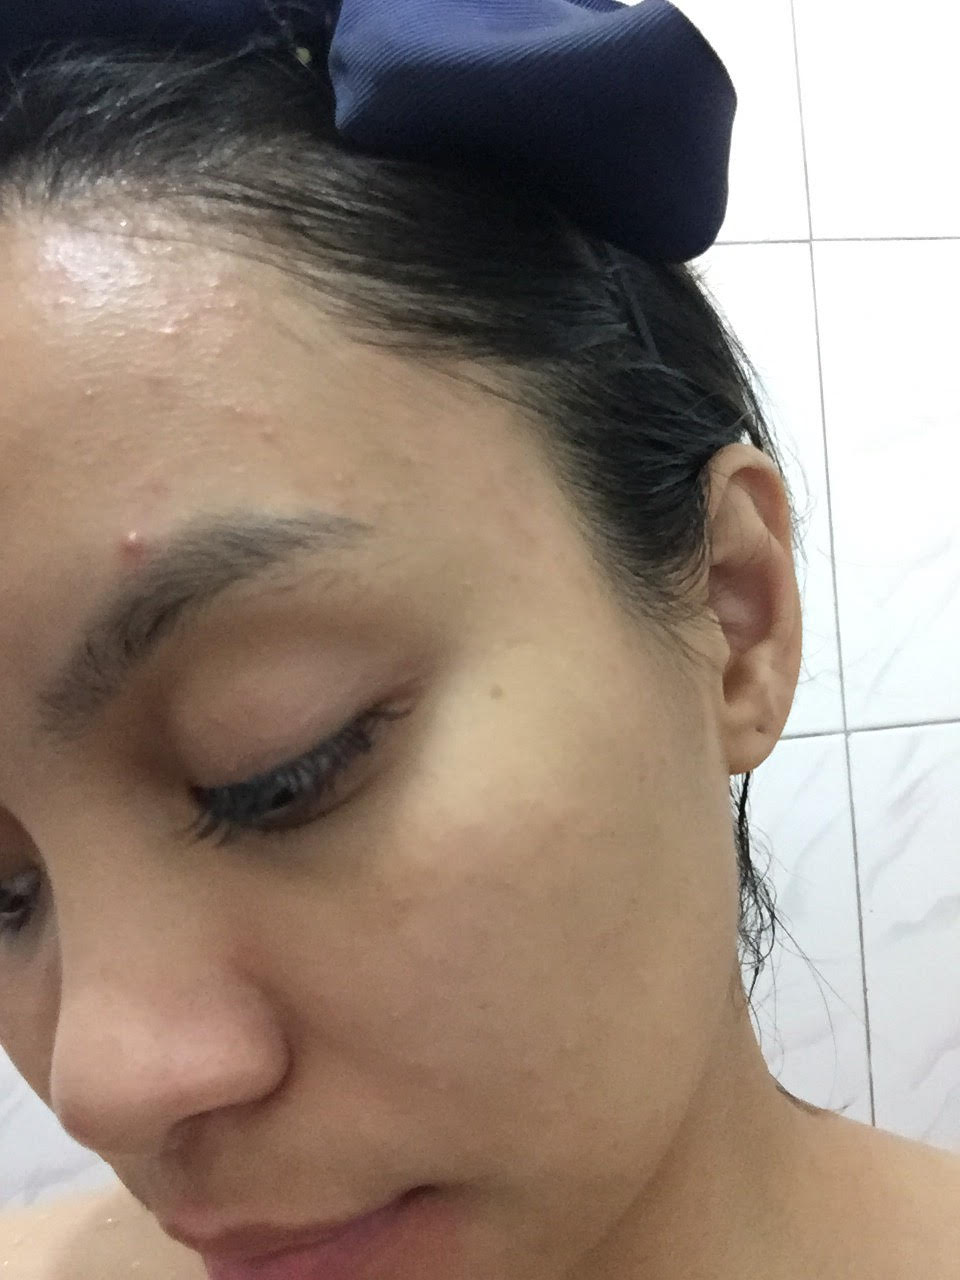 girl with bad acne breakout